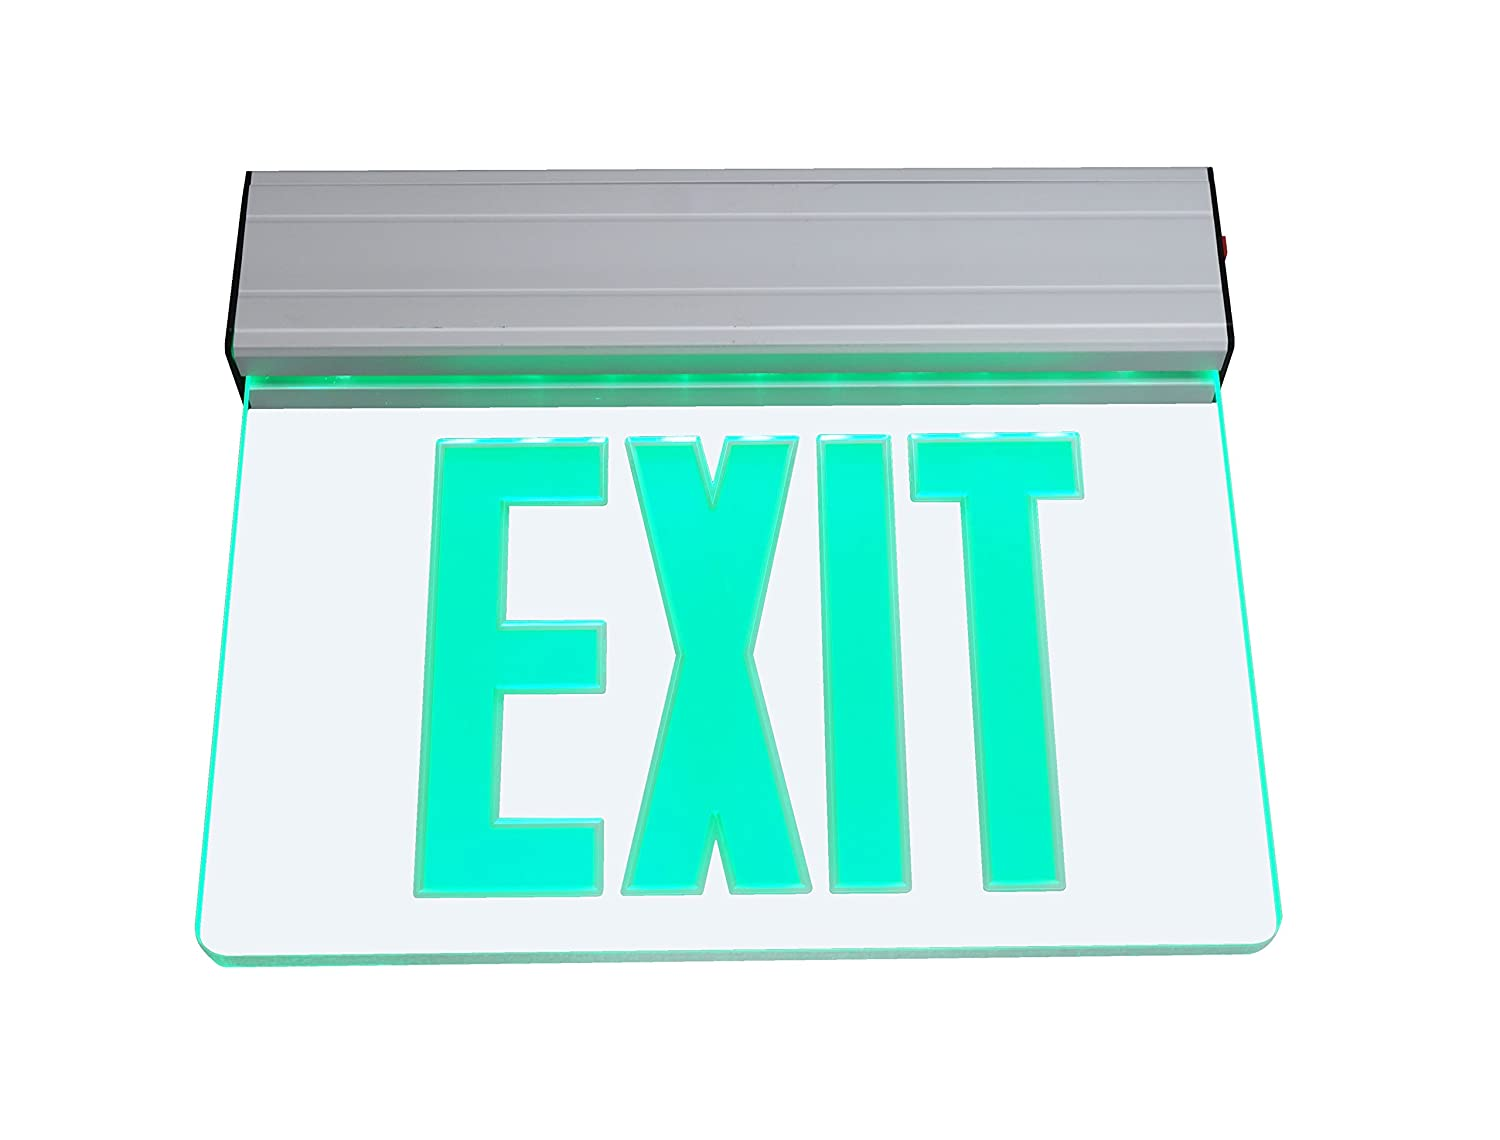 nicor lighting edge lit led emergency exit sign, clear with green Dvd Player Wiring Diagram nicor lighting edge lit led emergency exit sign, clear with green lettering (exl2 10 unv al cl g 1) amazon com